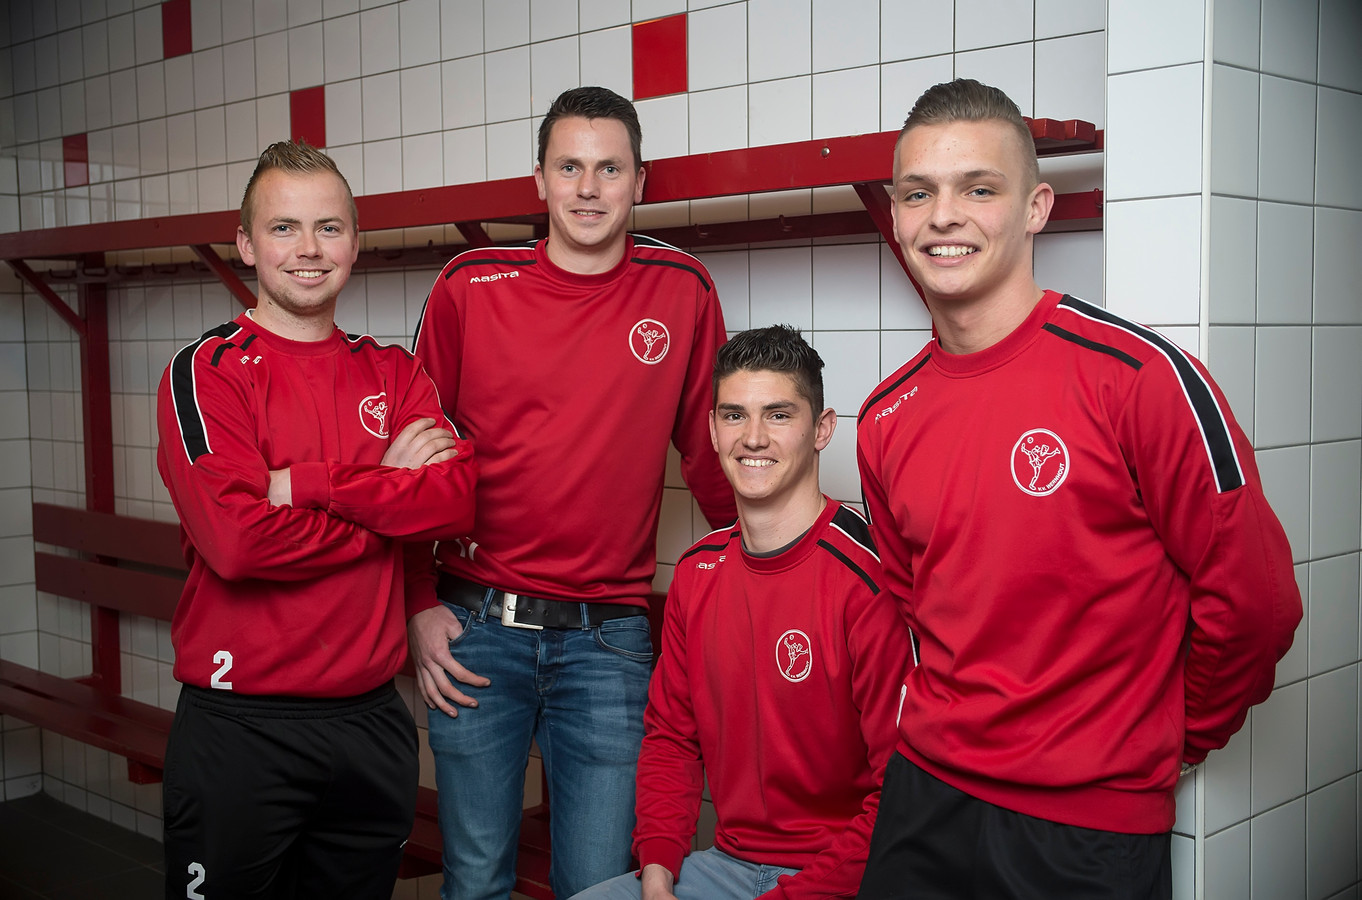 Christian Gommers, Maikel Zagers, Leroy Gommers en Max Gommers (vlnr).